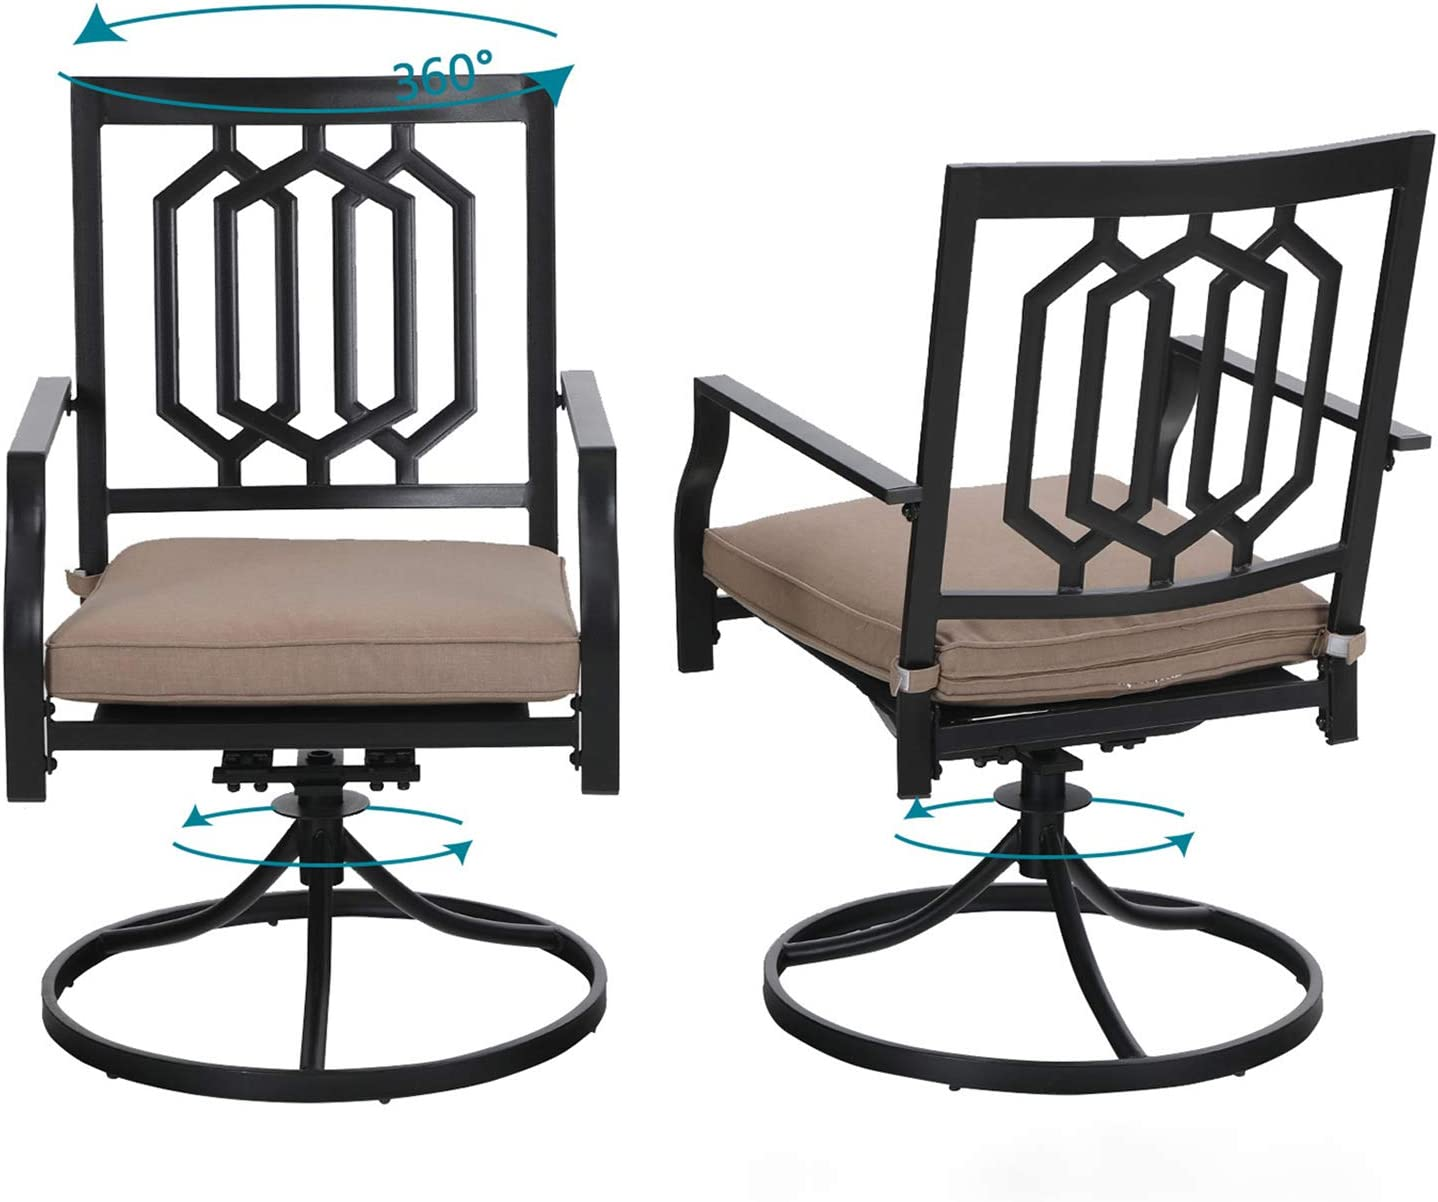 Sophia & William Outdoor Metal Swivel Chairs Set of 2 Patio Dining Rocker Chair with Cushion Furniture Set Support 300 lbs for Garden Backyard Bistro: Kitchen & Dining